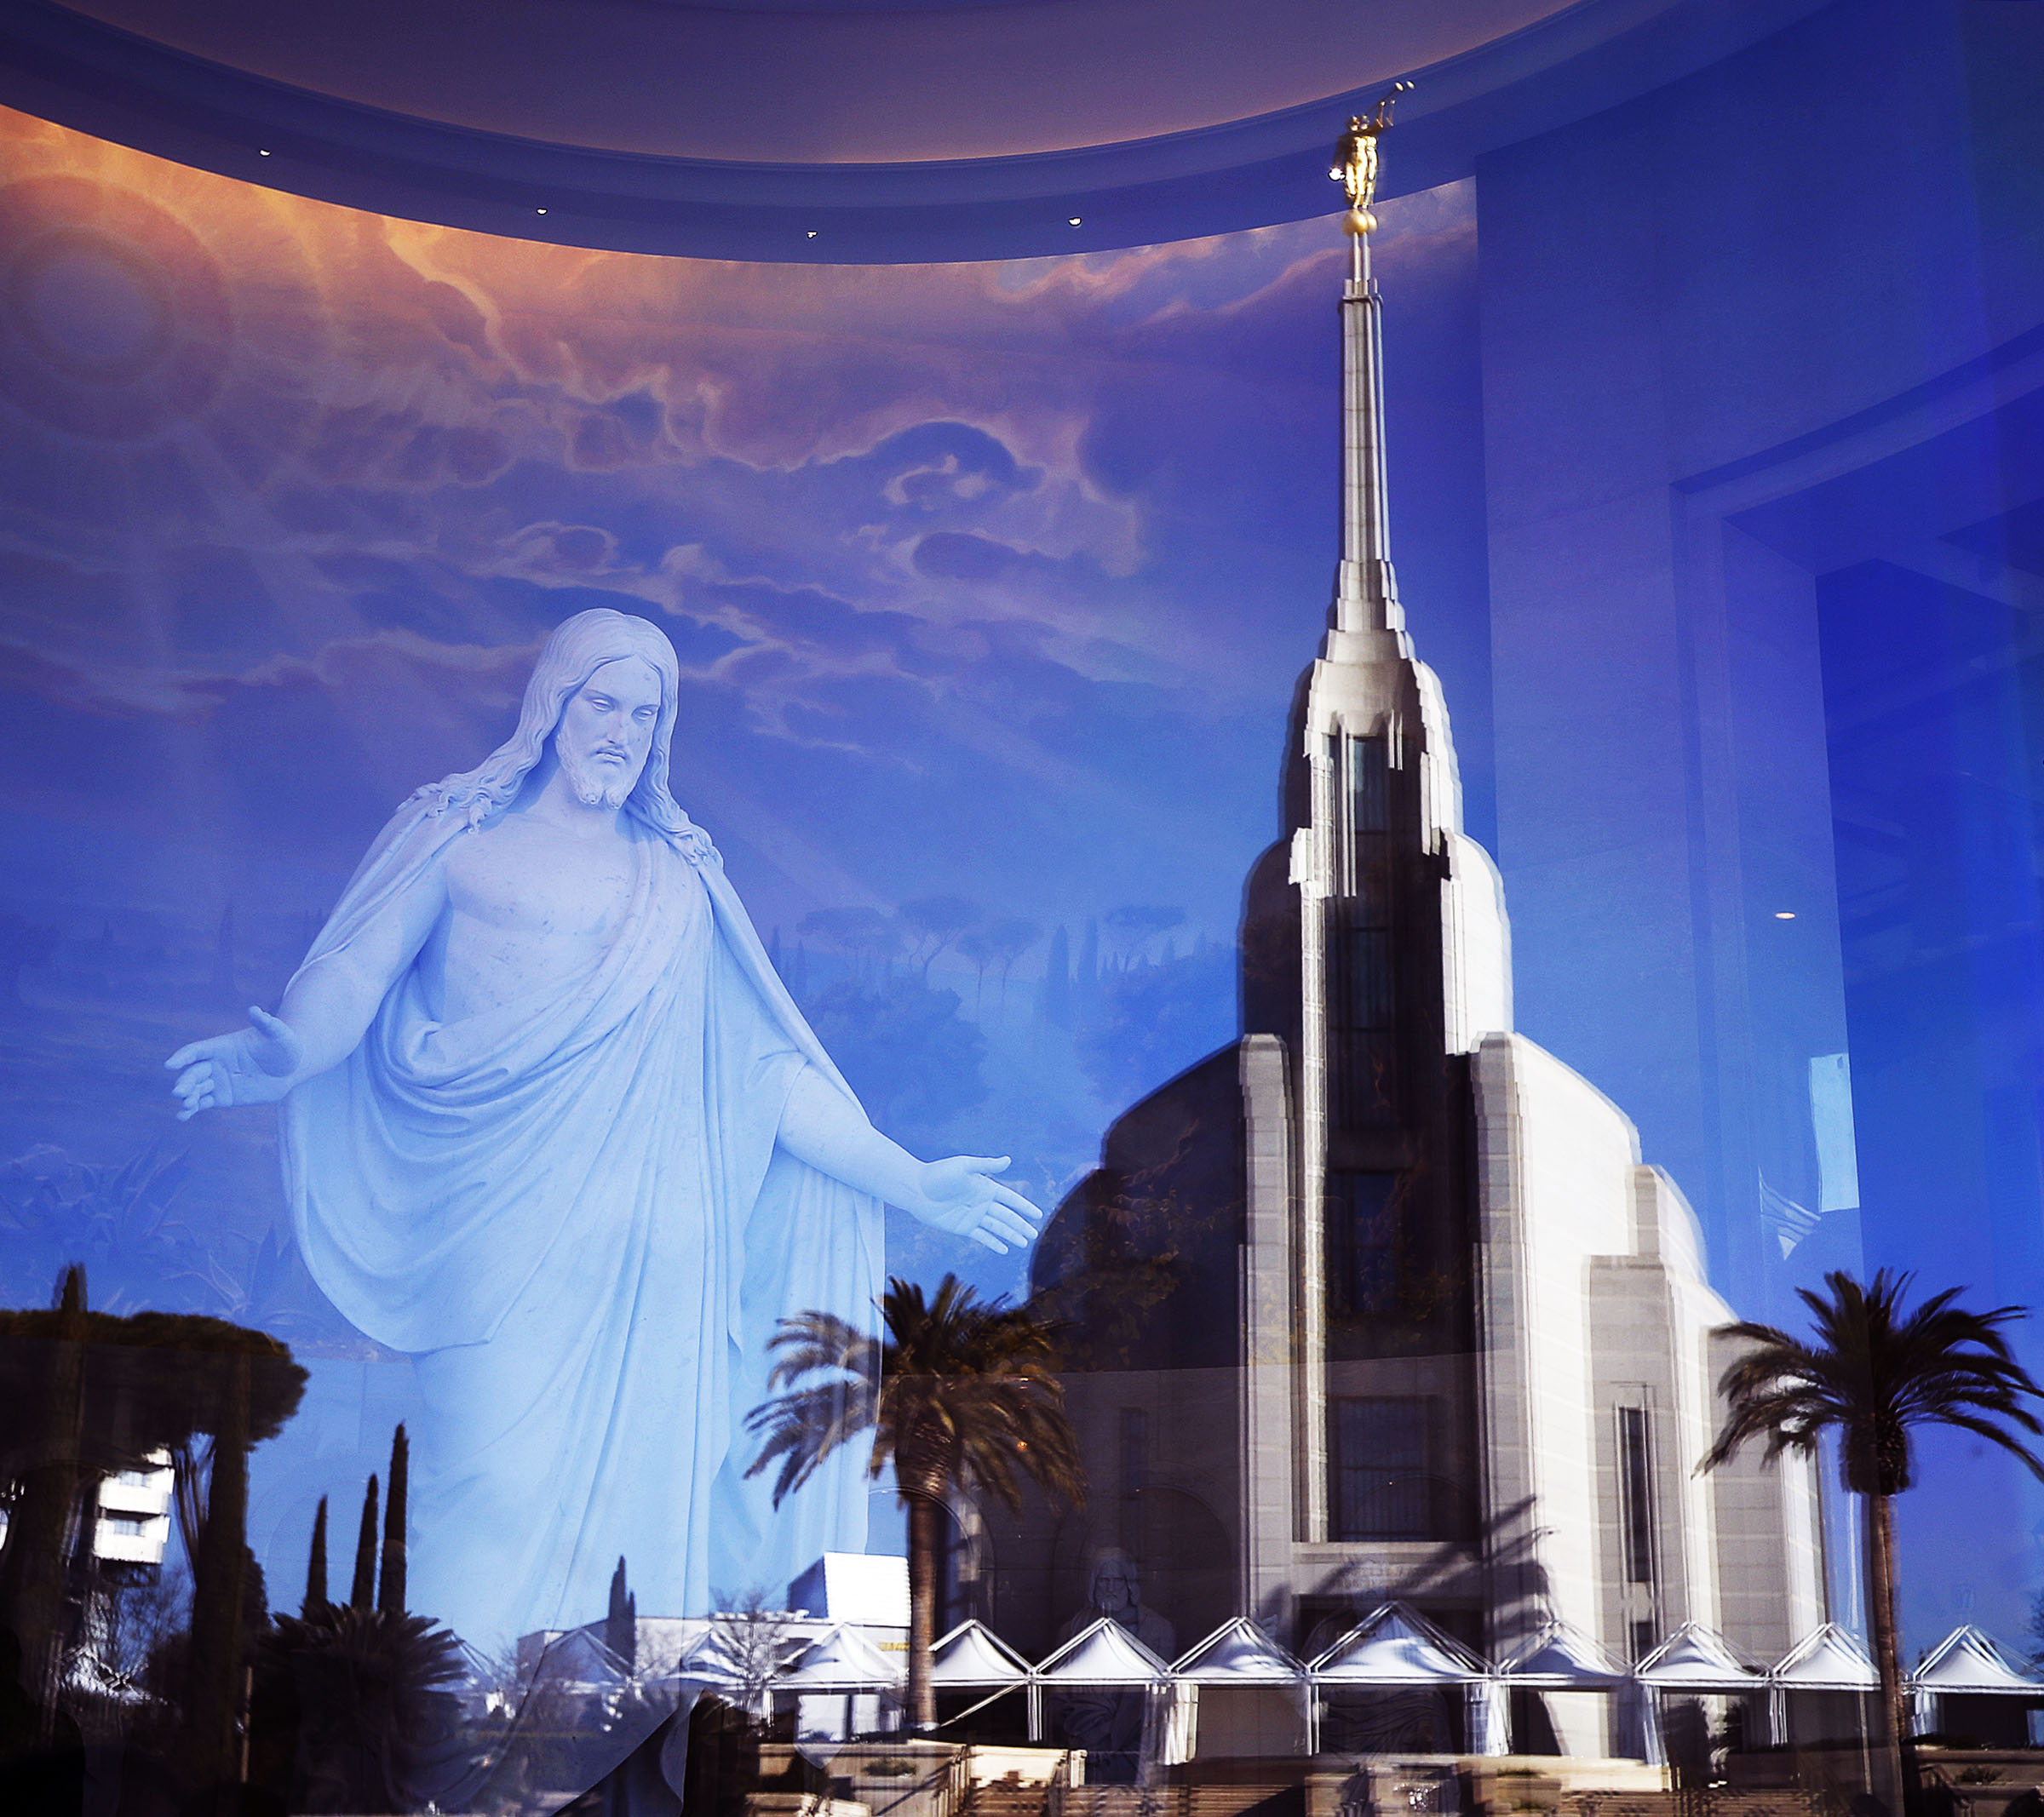 The Rome Italy Temple is reflected in the window of the Rome Temple Visitor's Center of The Church of Jesus Christ of Latter-day Saints on Monday, Jan. 14, 2019.